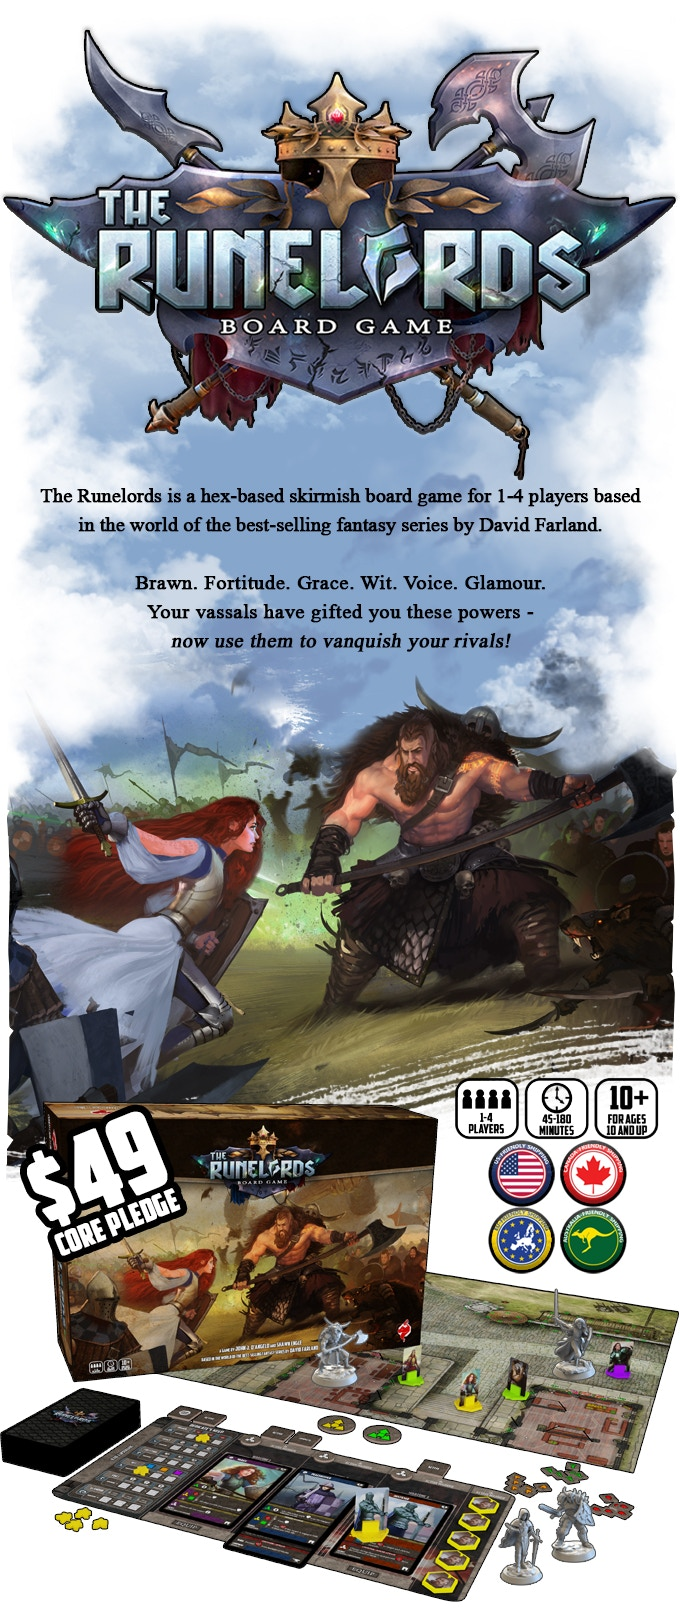 The Runelords set up example with box and $49 core set pledge